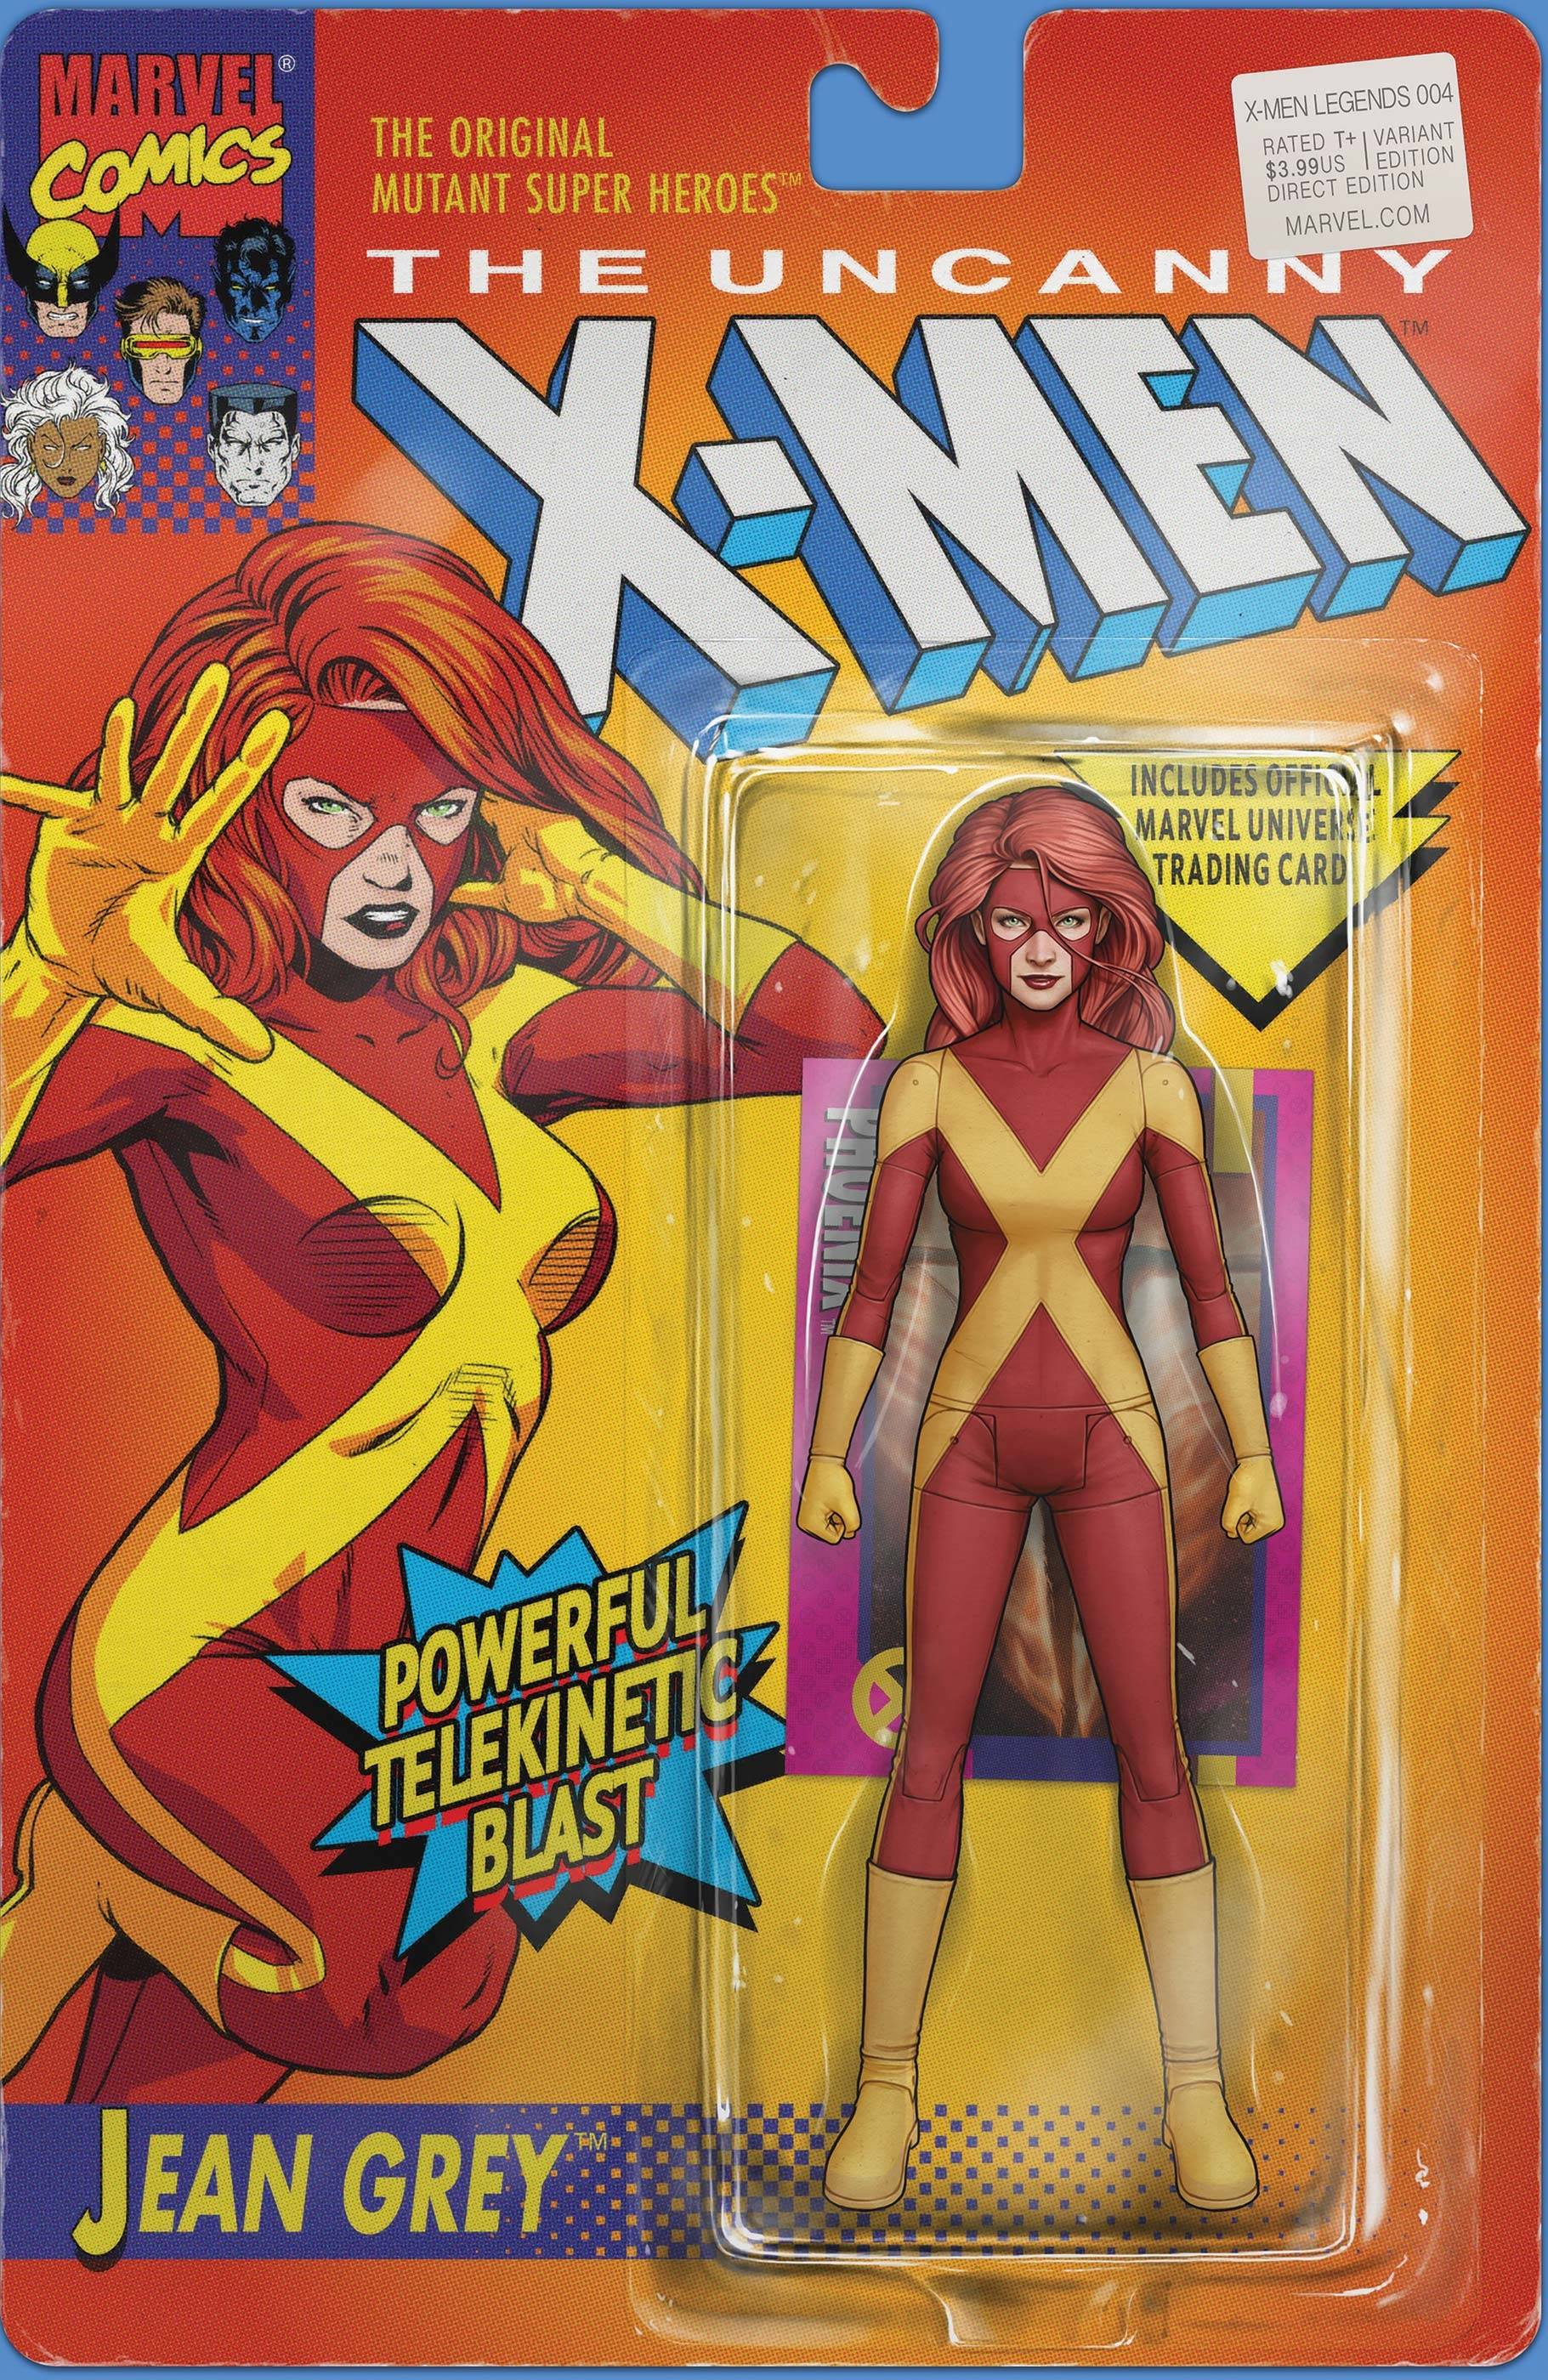 X-MEN LEGENDS #4 CHRISTOPHER ACTION FIGURE VAR